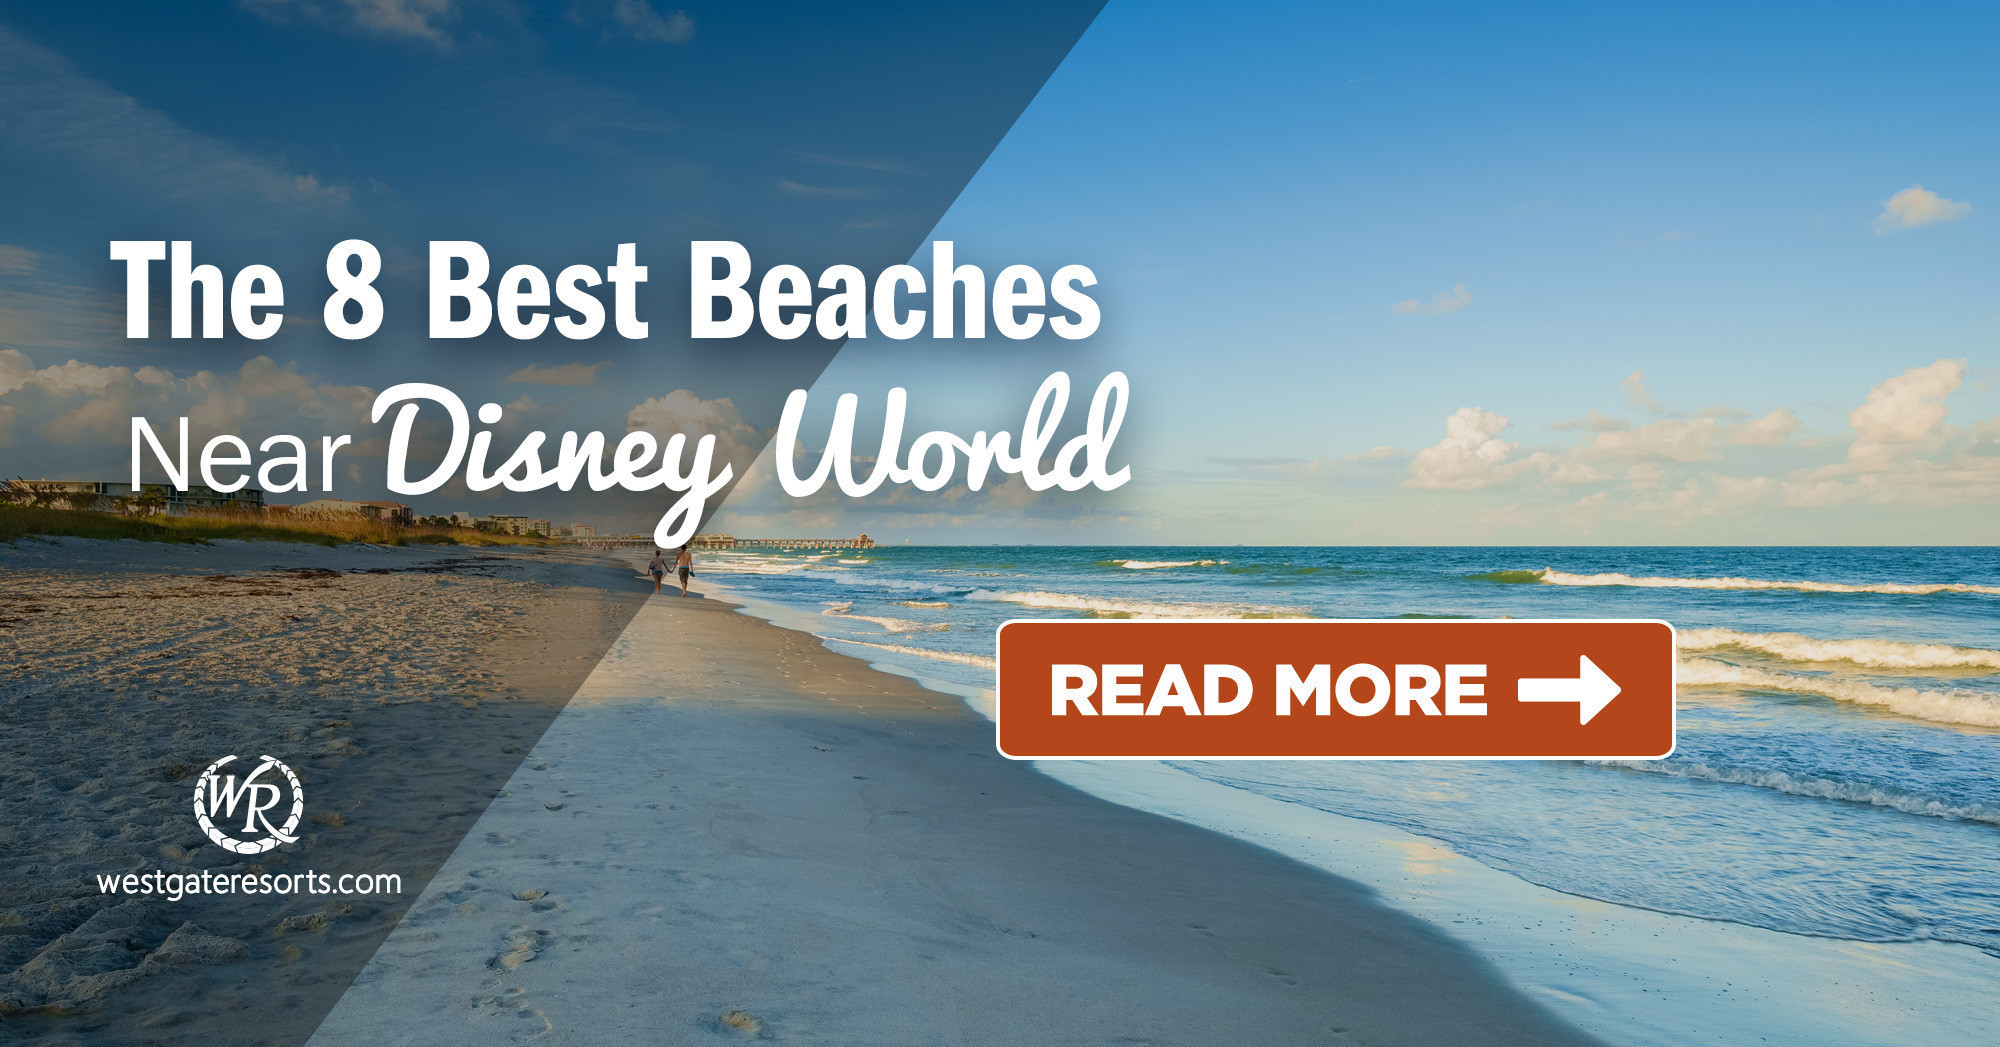 The 8 Best Beaches Near Disney World